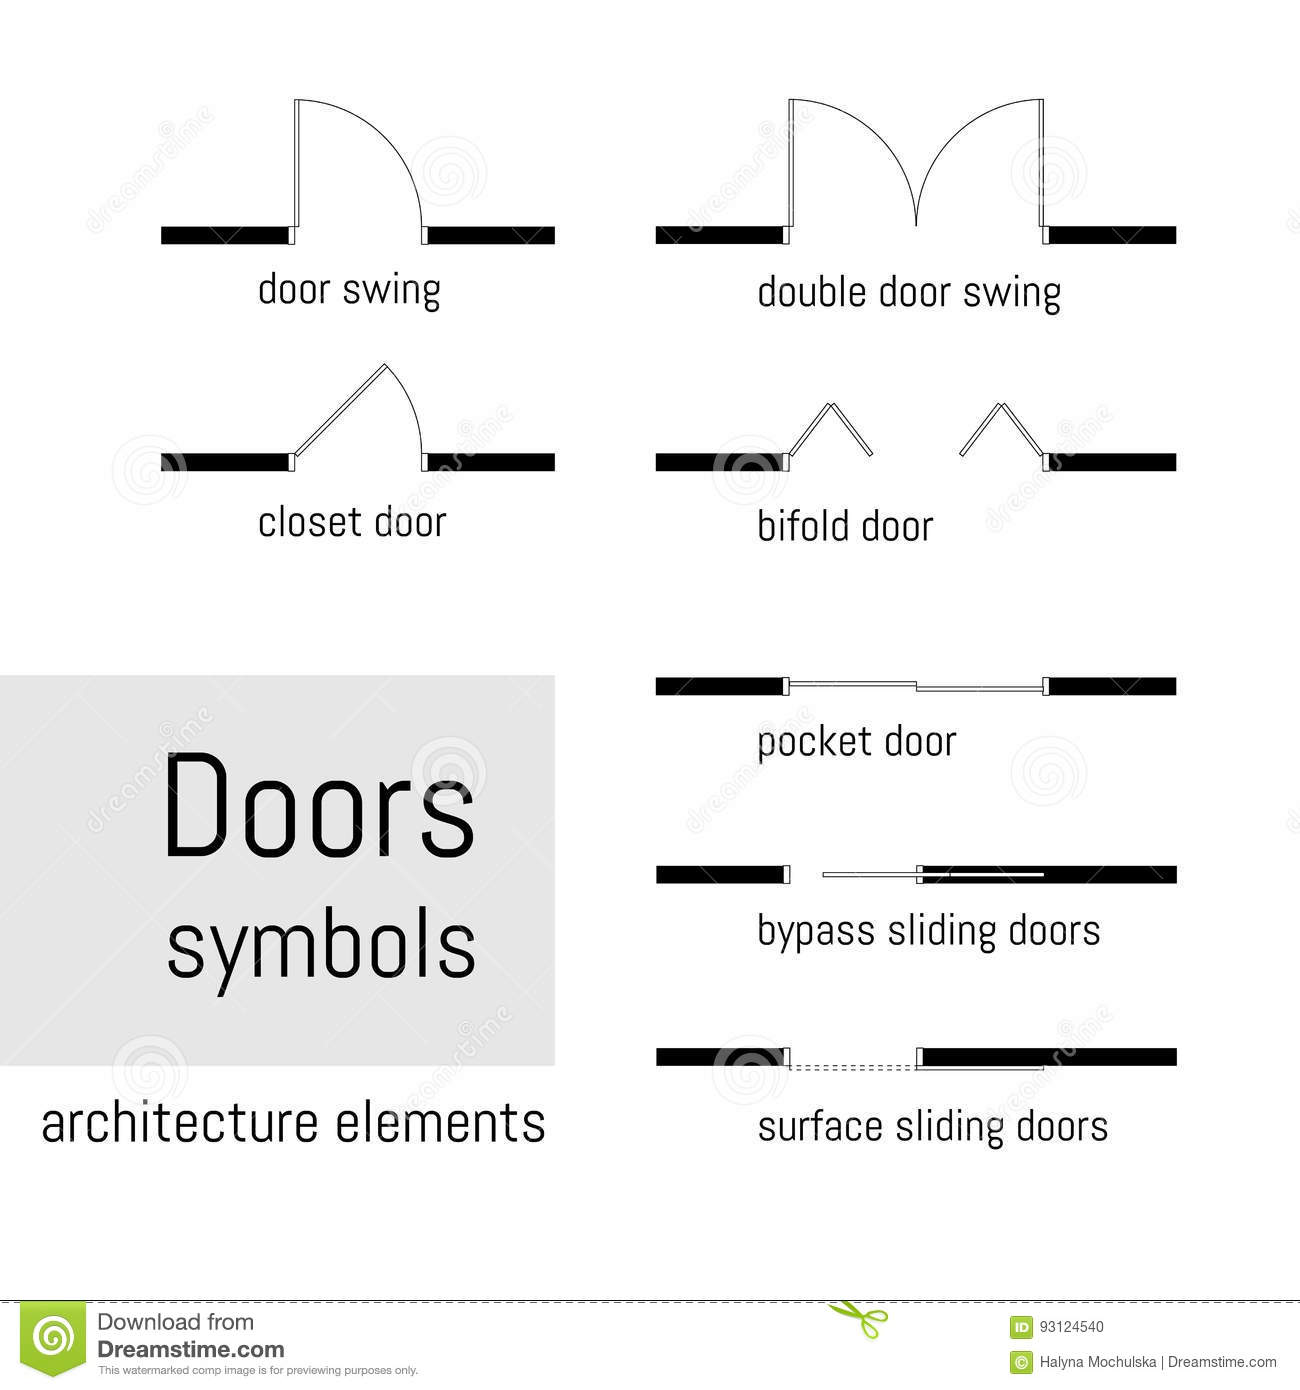 Top View Construction Symbols Used In Architecture Plans